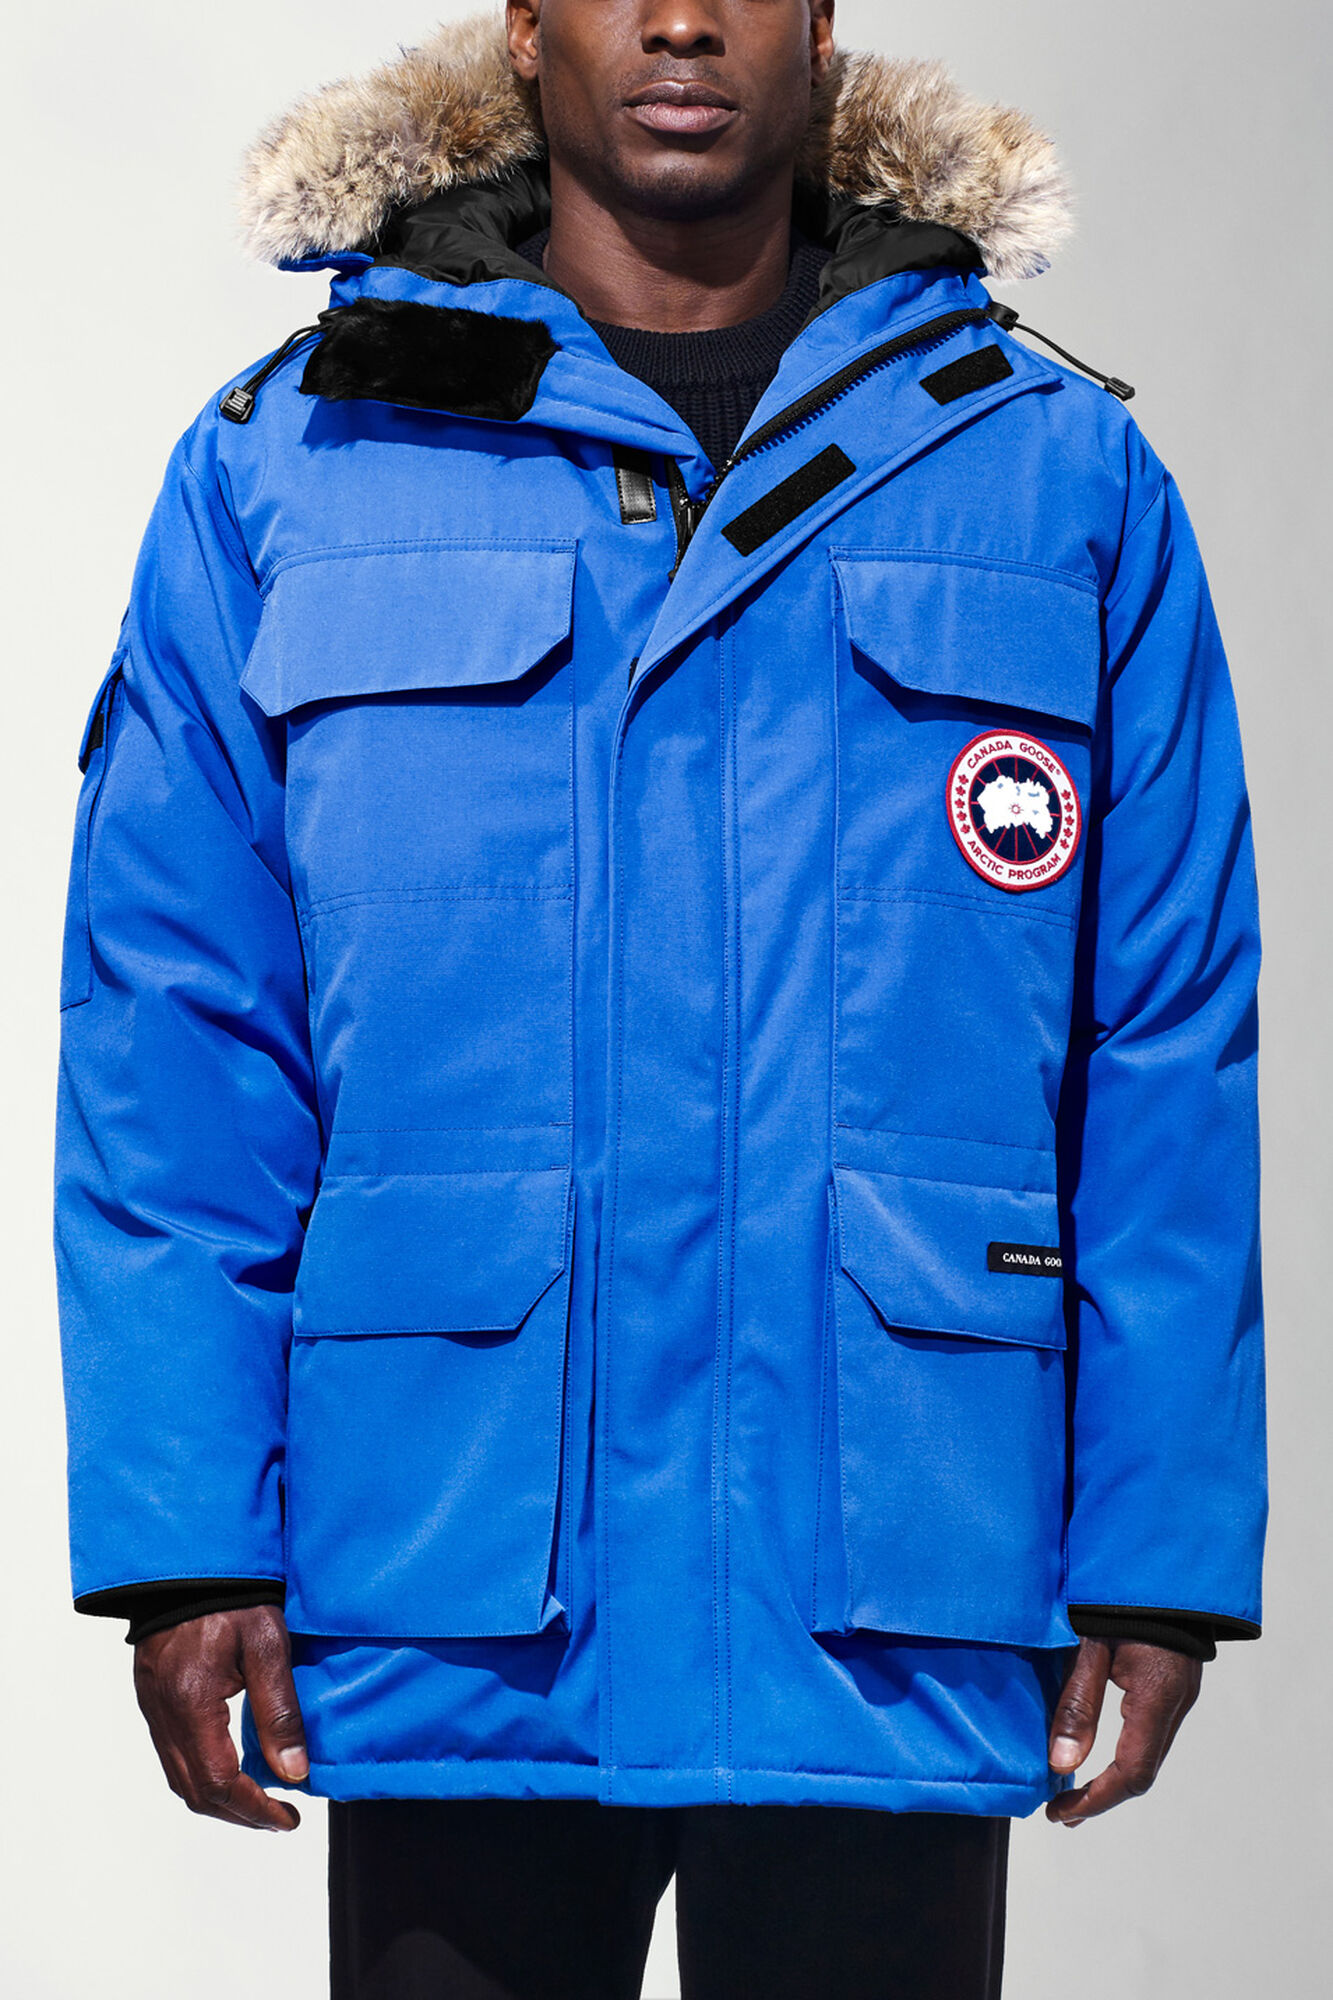 Canada Goose parka online cheap - Men's Polar Bears International PBI Expedition Parka | Canada Goose?